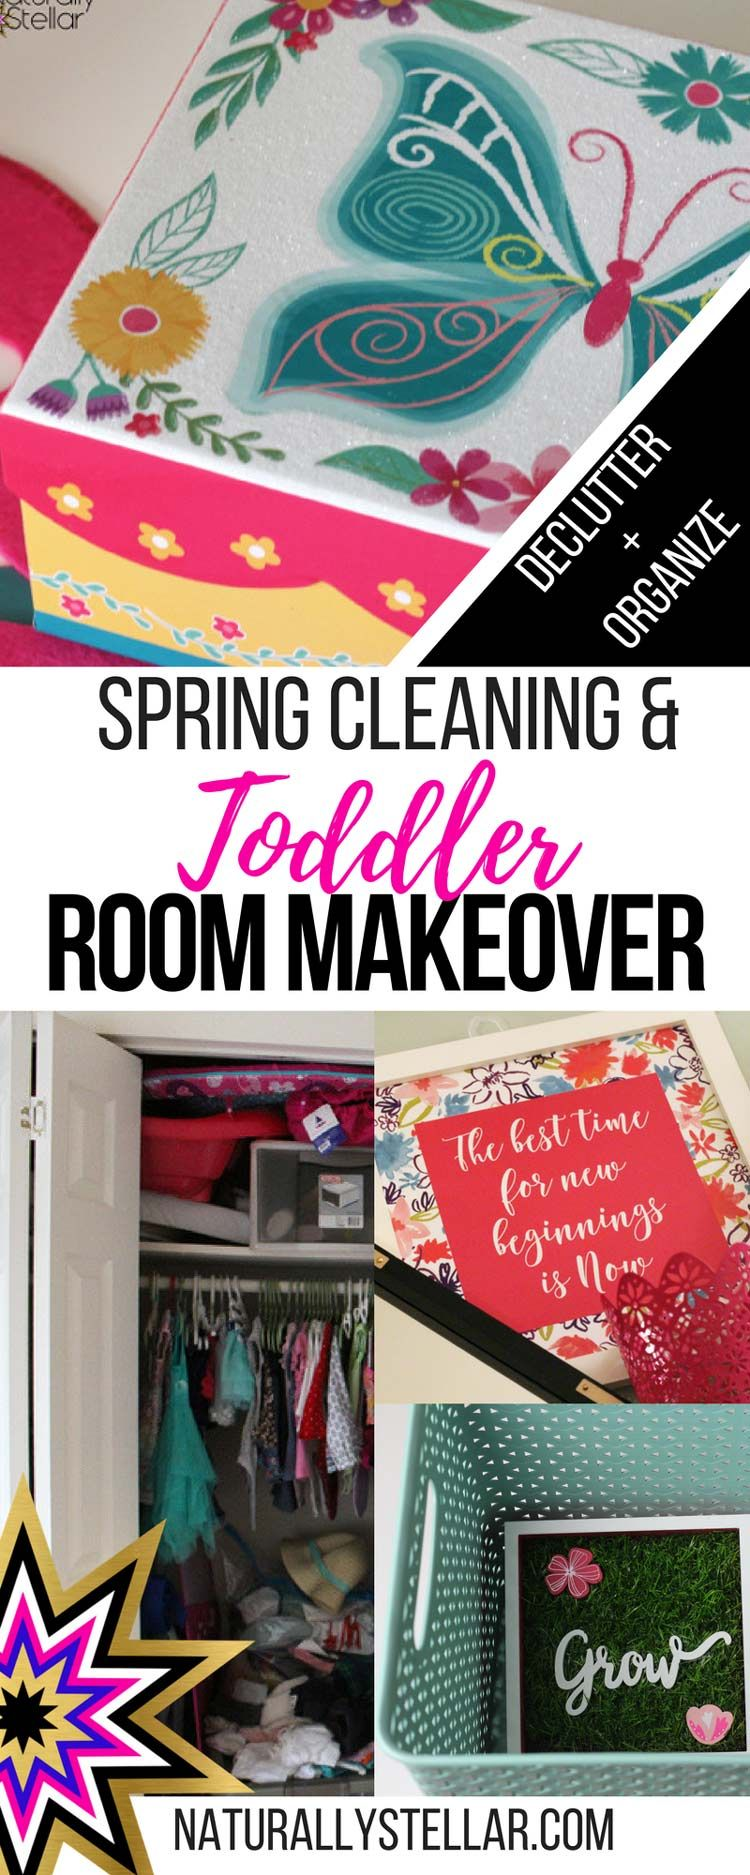 Toddler Room Makeover and Major Spring Cleaning - Part 1 images